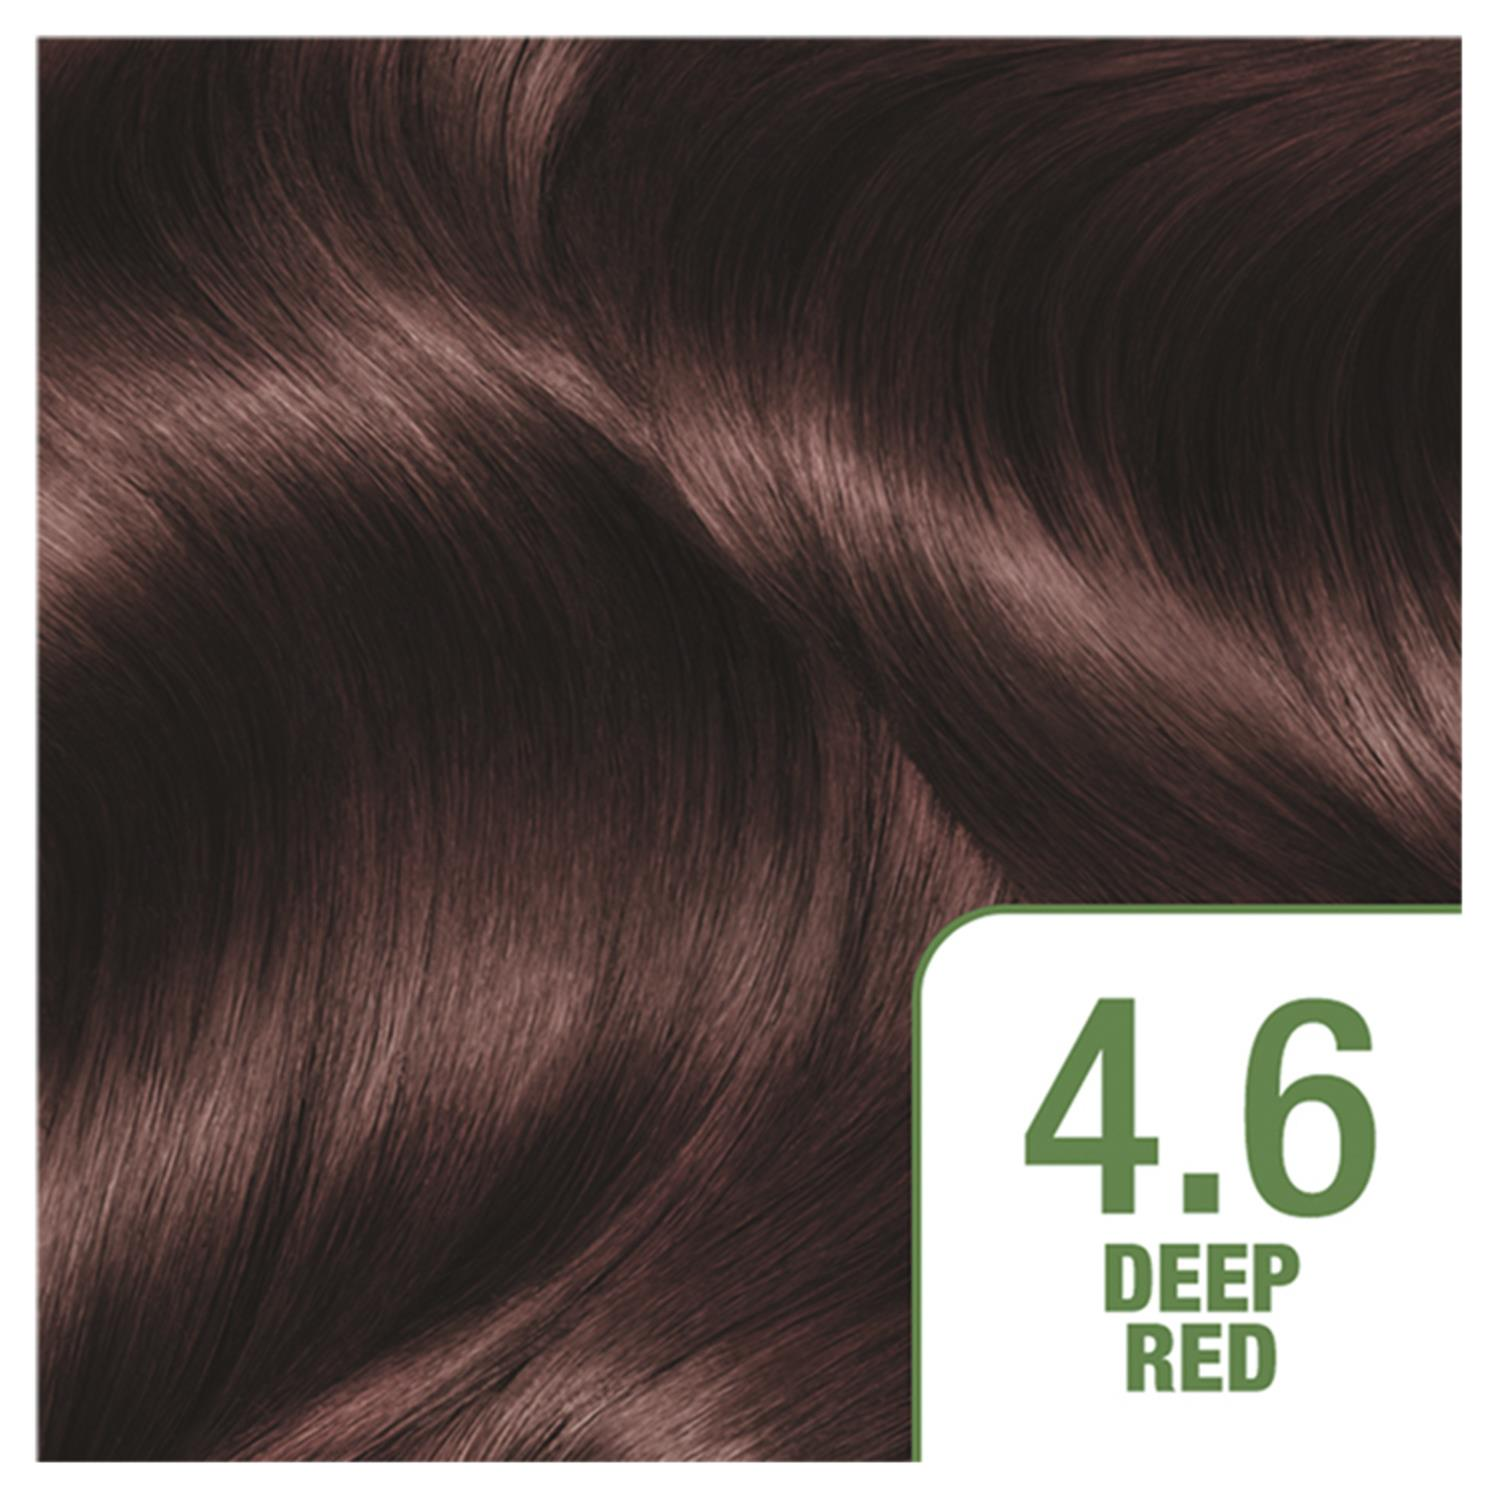 thumbnail 99 - 3 Pack Garnier Nutrisse Permanent Hair Dye With Different Shades